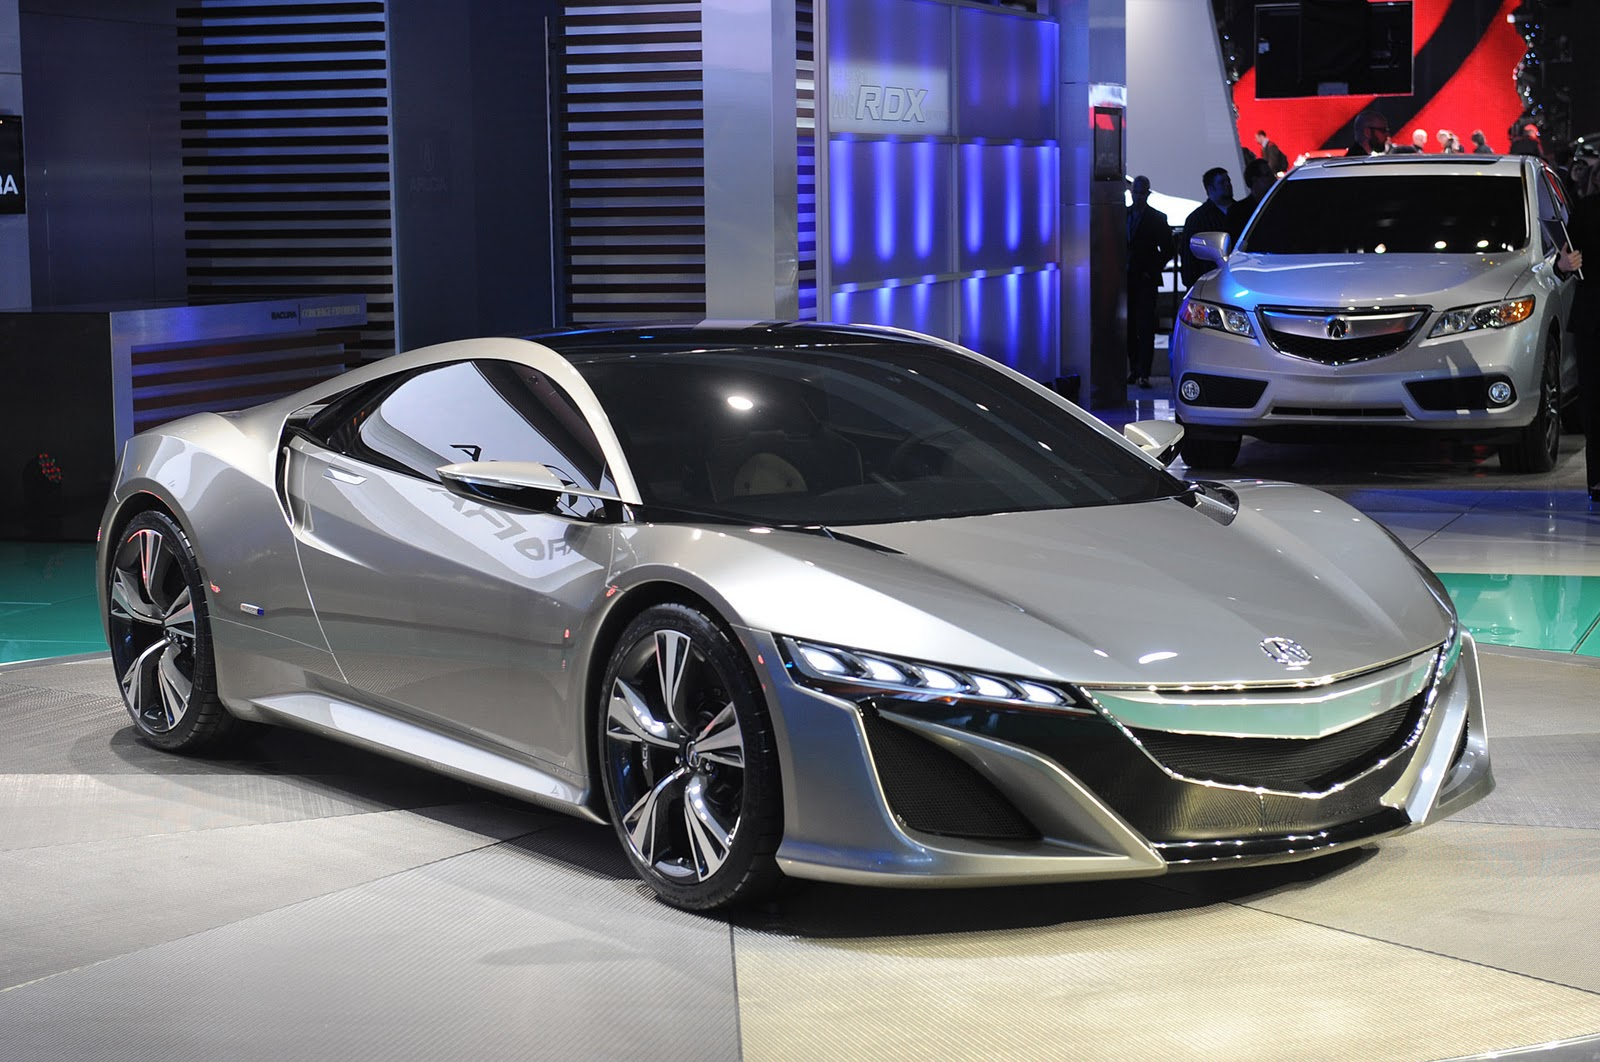 fotos e imagens de carros carros importados fotos do acura nsx concept. Black Bedroom Furniture Sets. Home Design Ideas